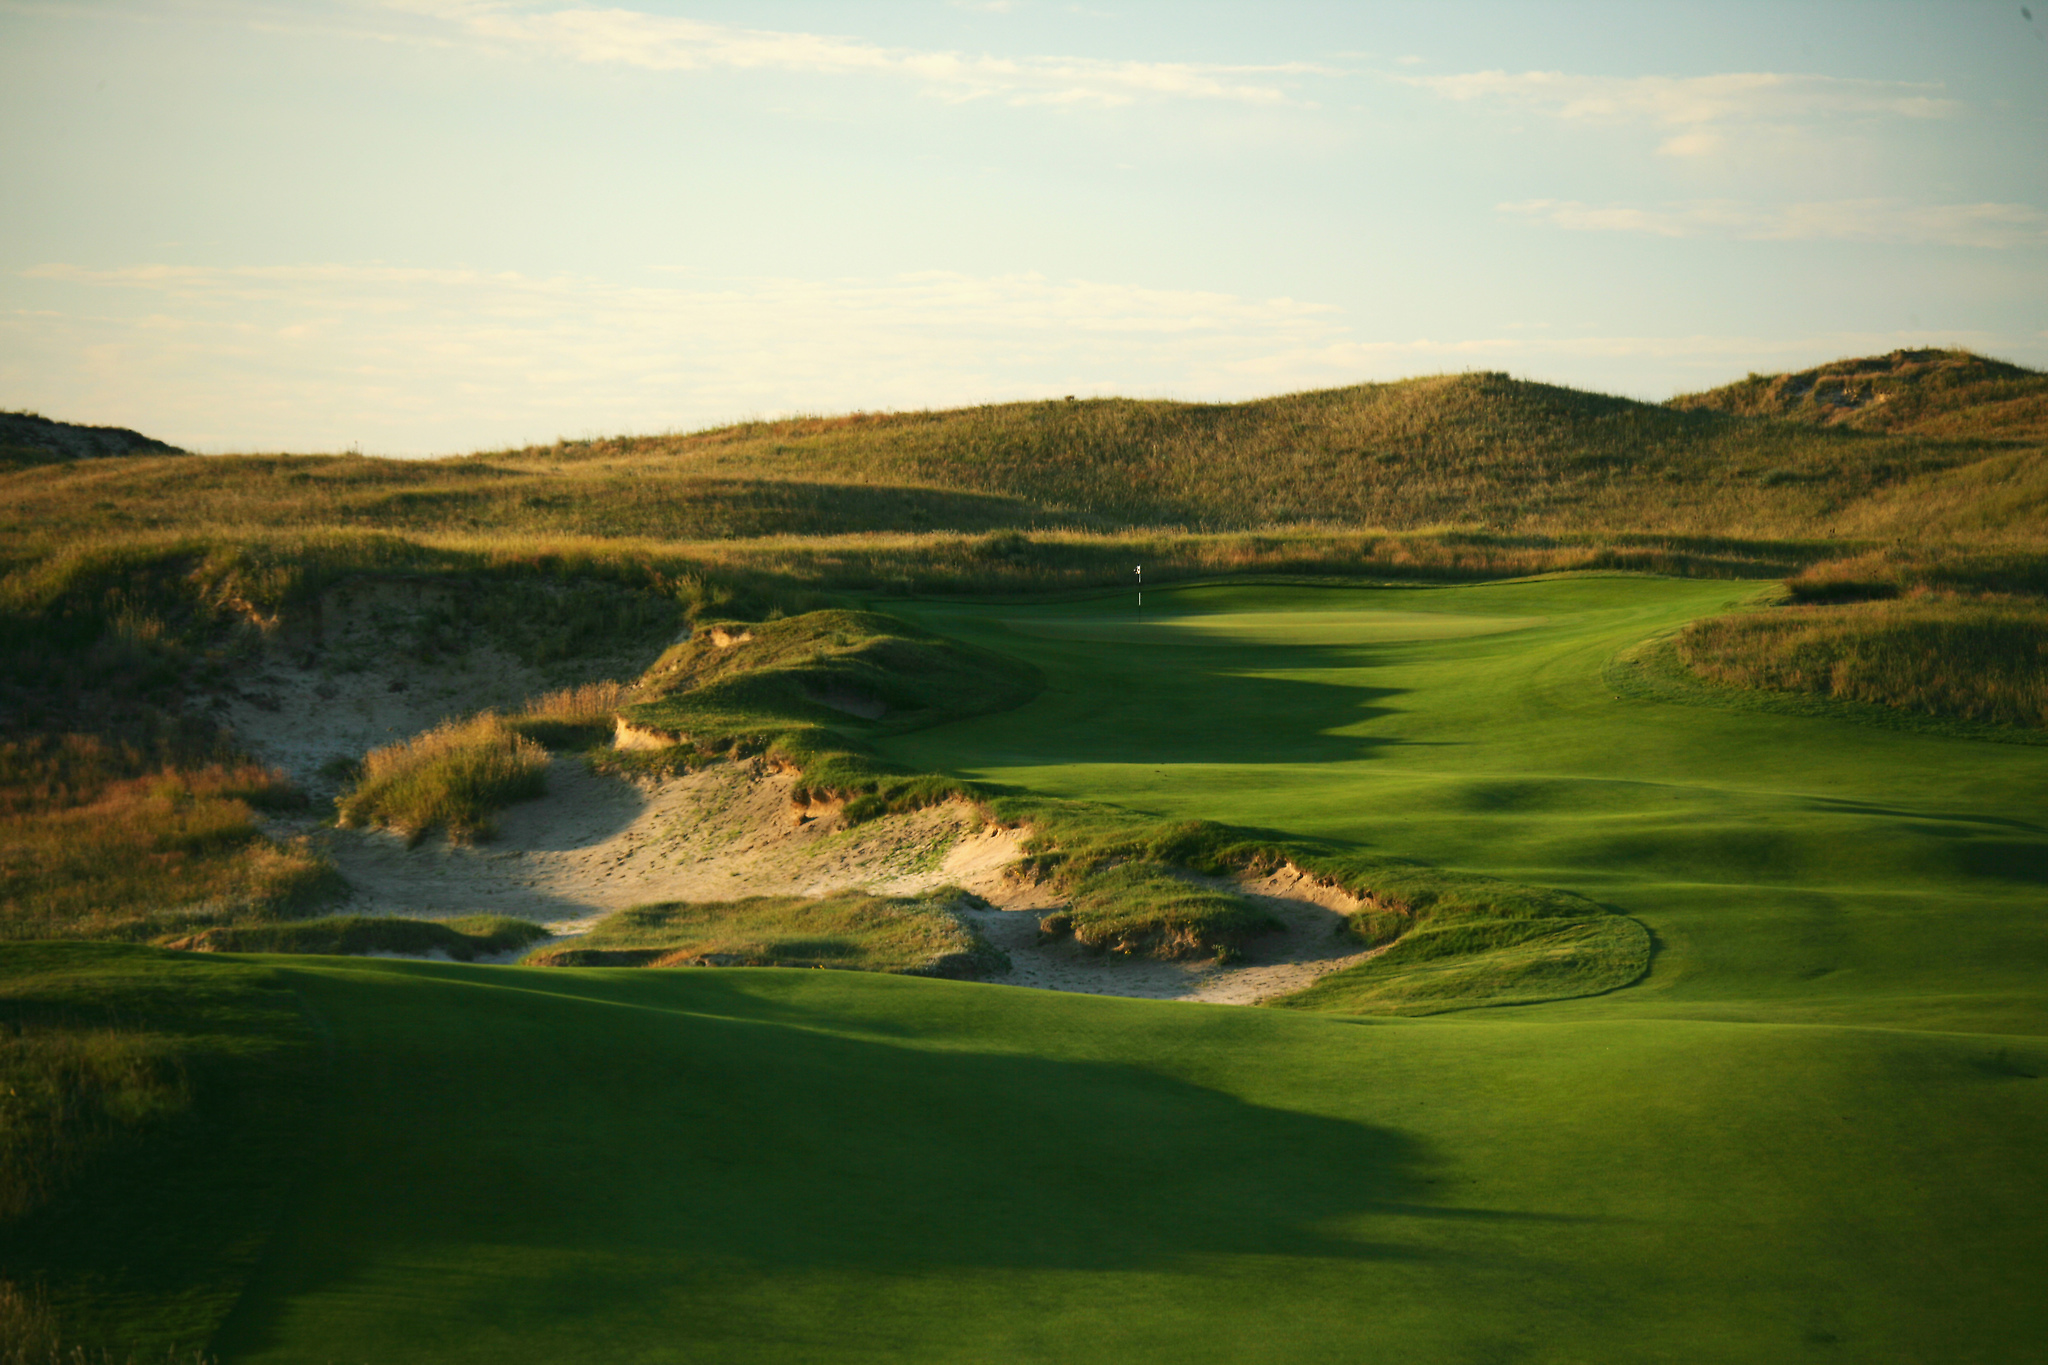 Overview of golf course named Sand Hills Golf Club